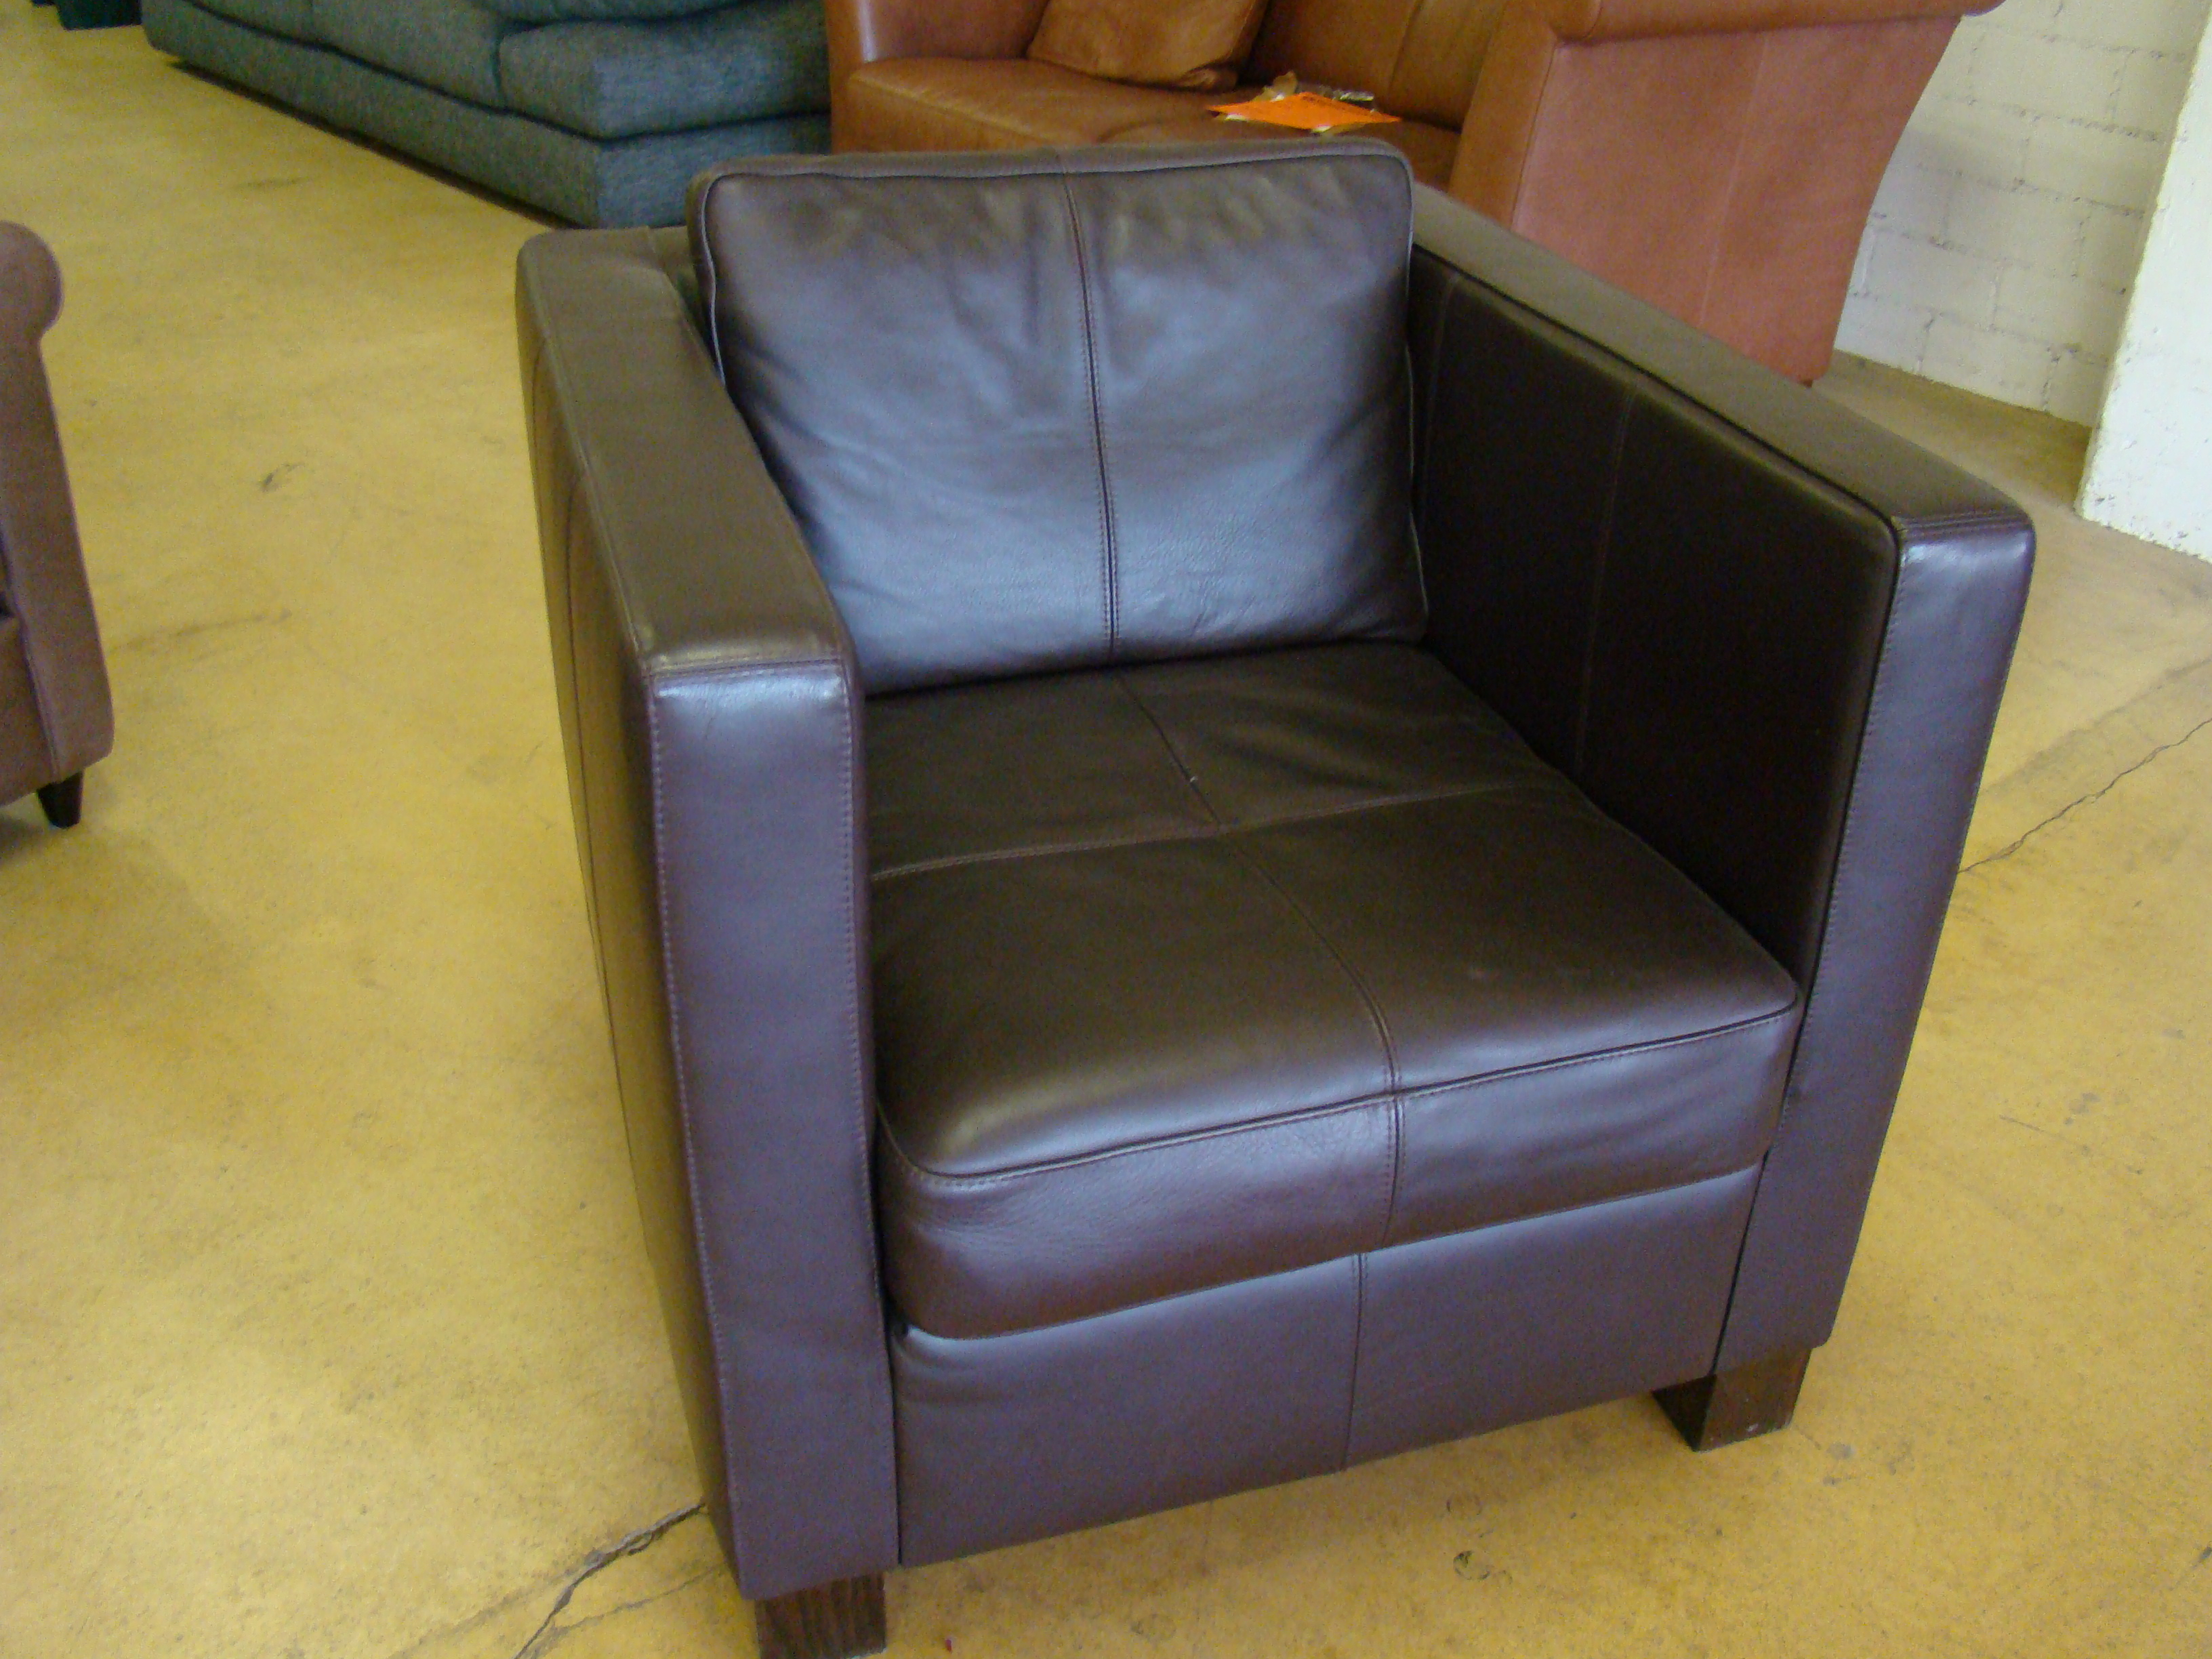 machalke sessel crack 200 in leder aubergine ausstellungsst ck ebay. Black Bedroom Furniture Sets. Home Design Ideas